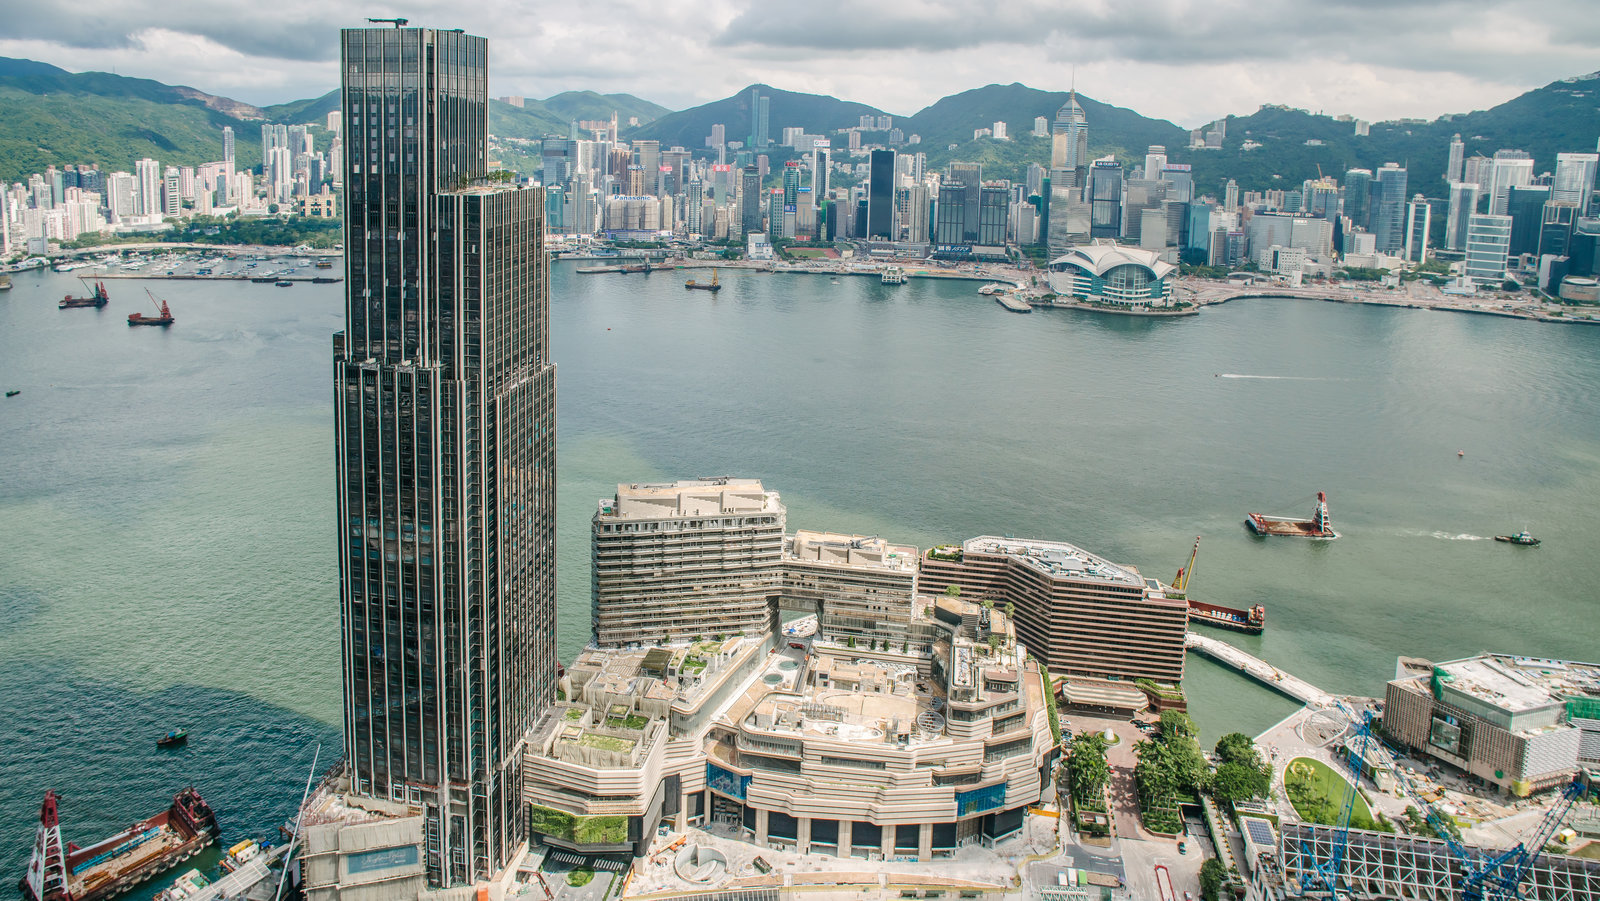 Aging Hong Kong Waterfront Gets A Face Lift The New York